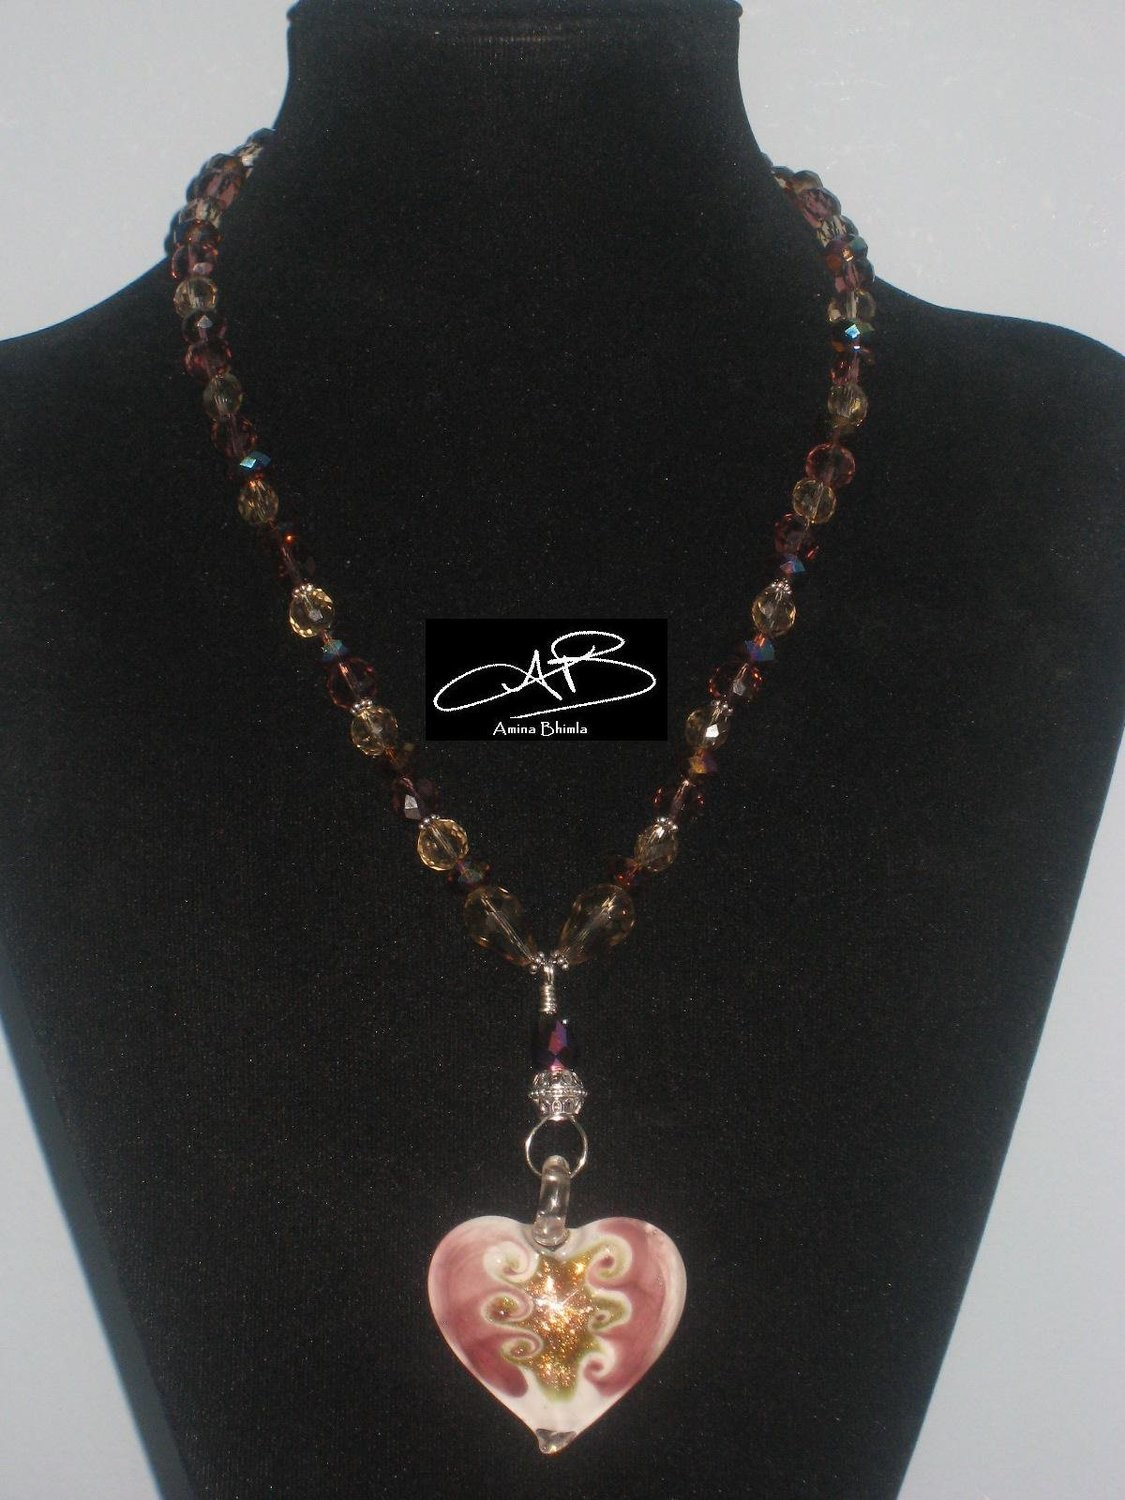 PINK GOLD FLAMED HEART NECKLACE/COLLIER AVEC PENDENTIF DE COEUR MURANO EN ROSE